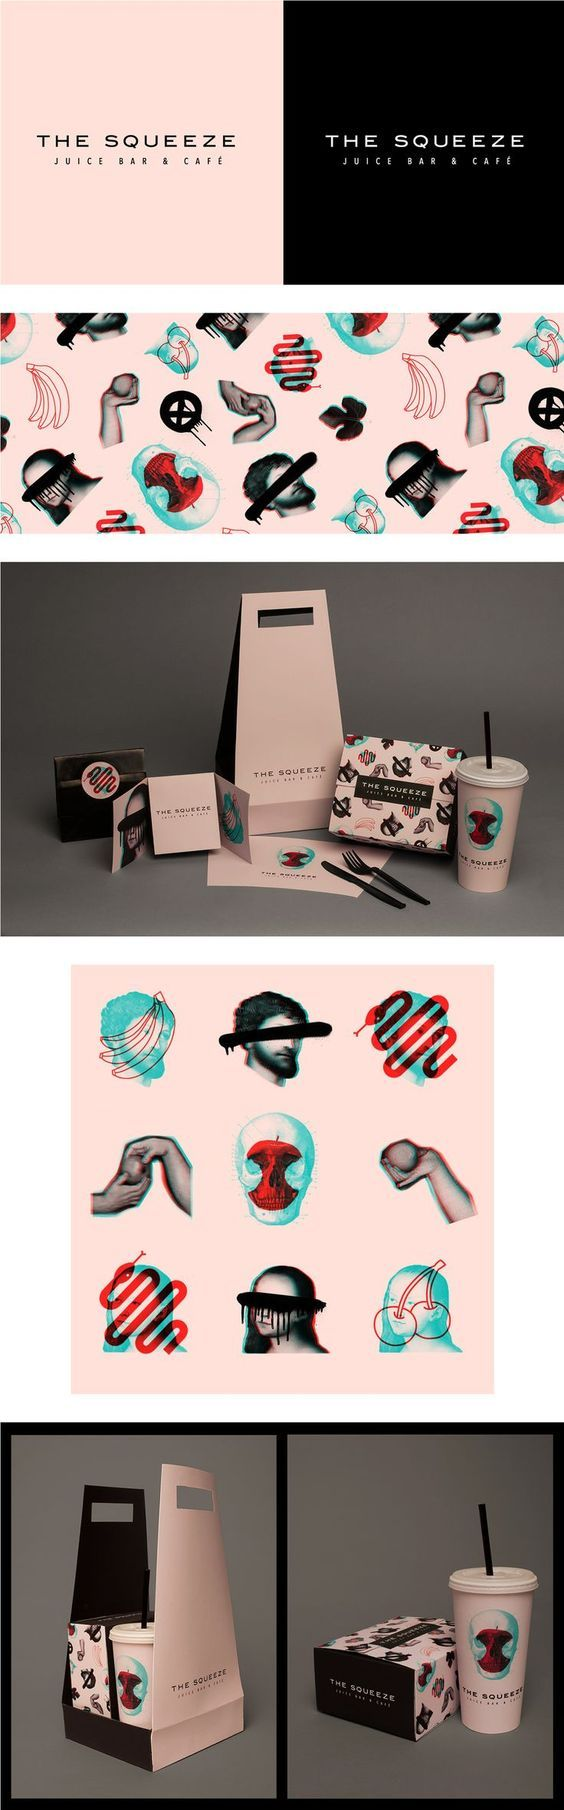 (53) The Squeeze Juice Bar & Cafe Takeaway Packaging by Laura Pursel   Logo, visual id, brand, iconography   Pinterest / Packaging / Design / Branding / Ideas / Inspiration / Brand / Visual Identity / Graphism / Edgy / Modern / Bold / Collage / Digital Art / Restaurant / Bar / Juicery / Cafe